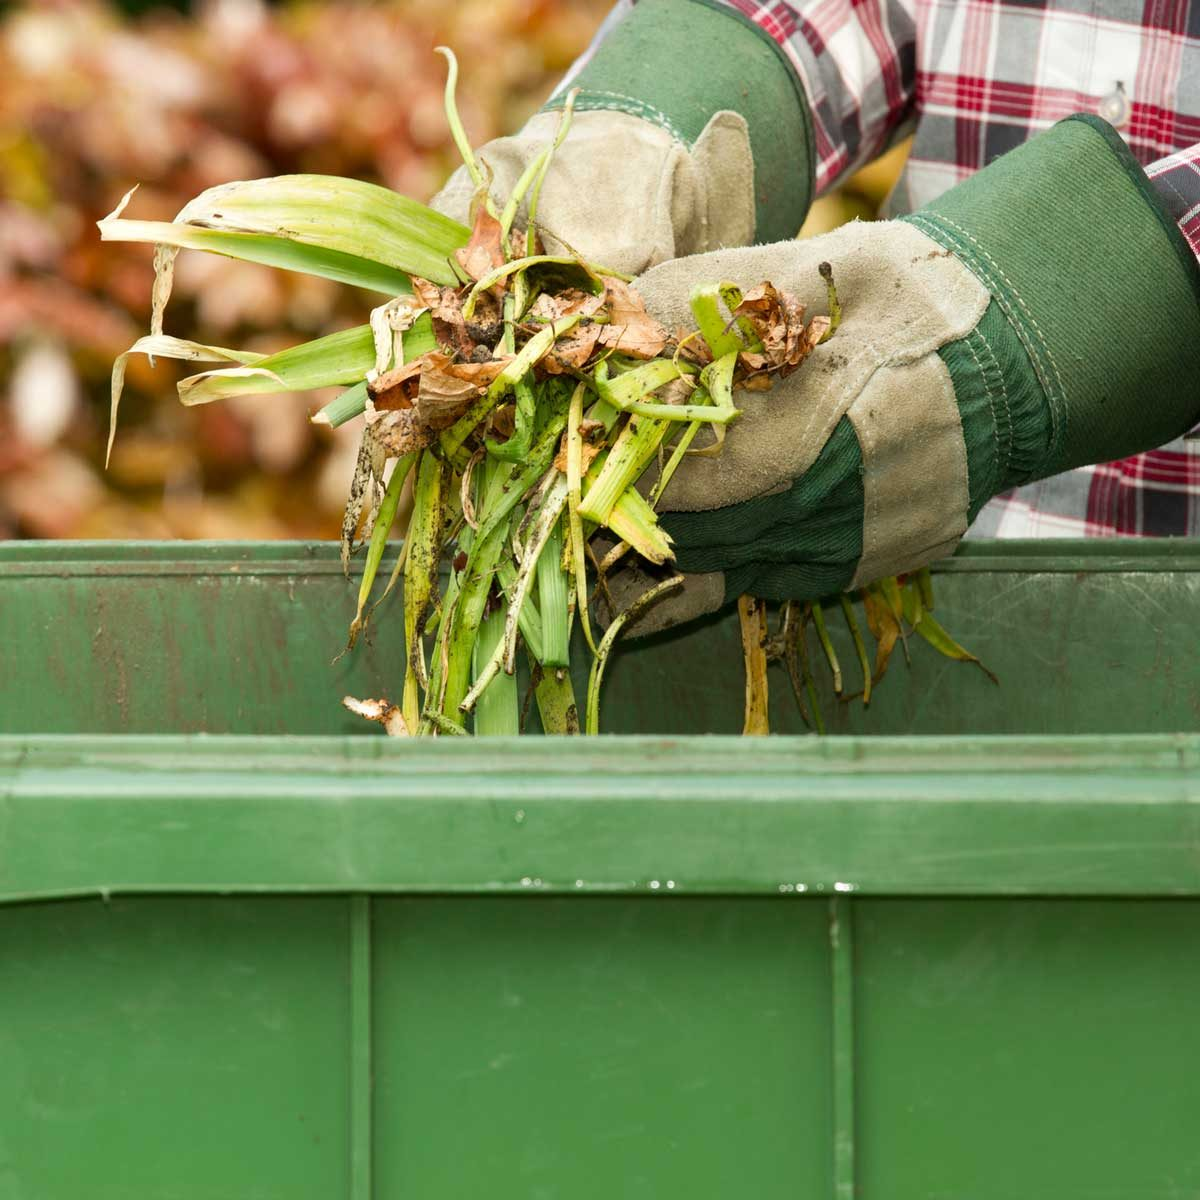 Disposing of yard waste in a collection bin